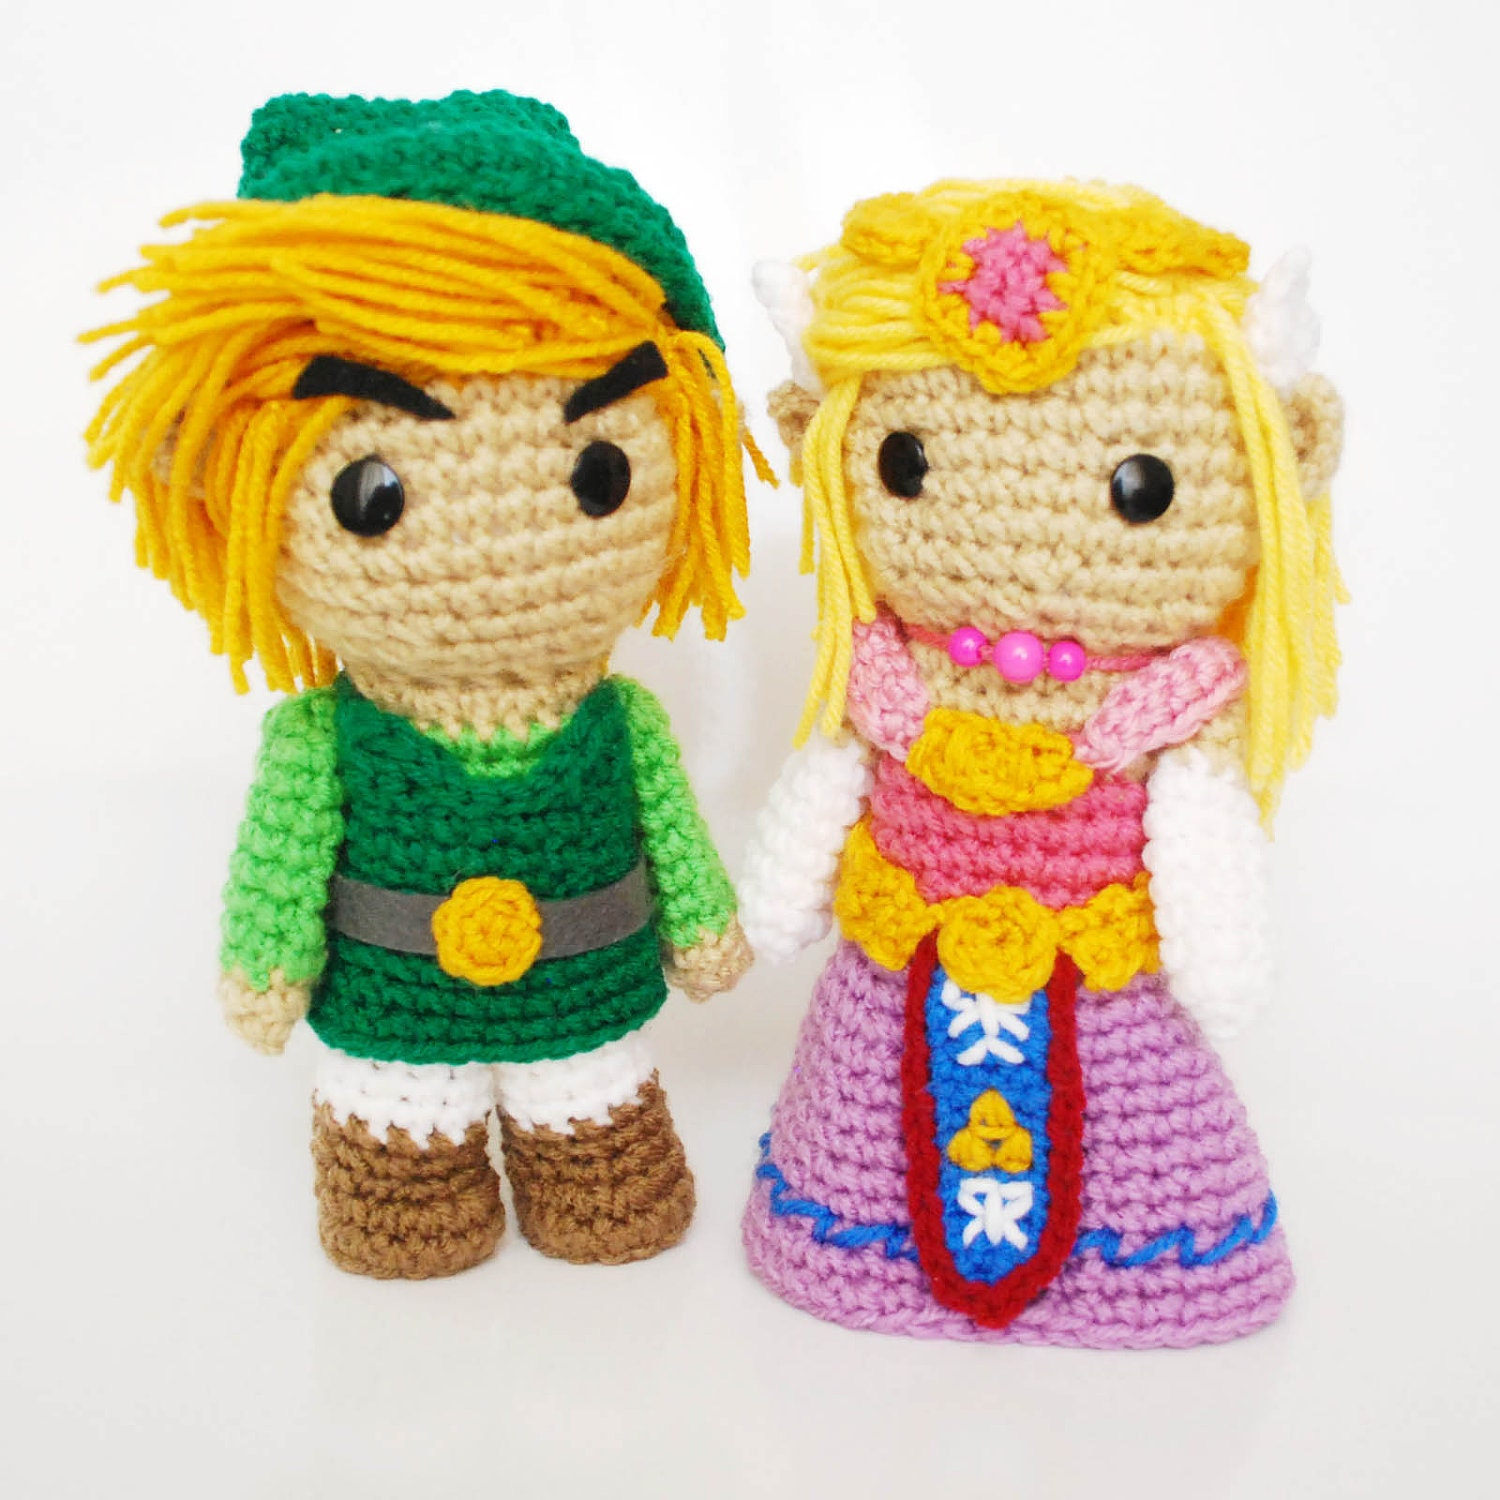 Link Crochet Pattern Zelda : Link and Zelda. FREE SHIPPING. Crochet Amigurumi Plush Dolls